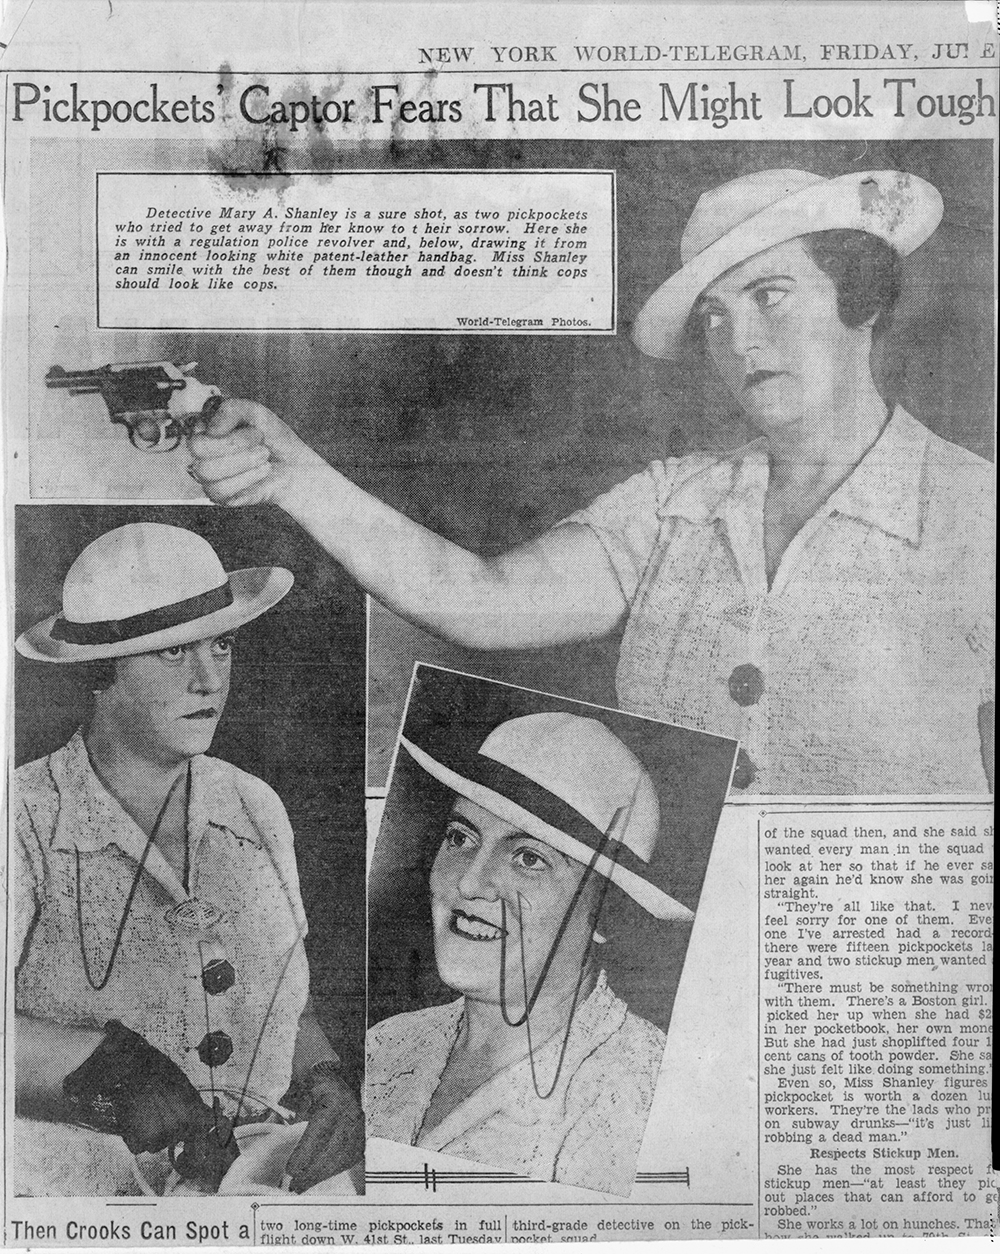 Mary A. Shanley, New York City detective, 1937. Library of Congress, New York World-Telegram and the Sun Newspaper Photograph Collection.